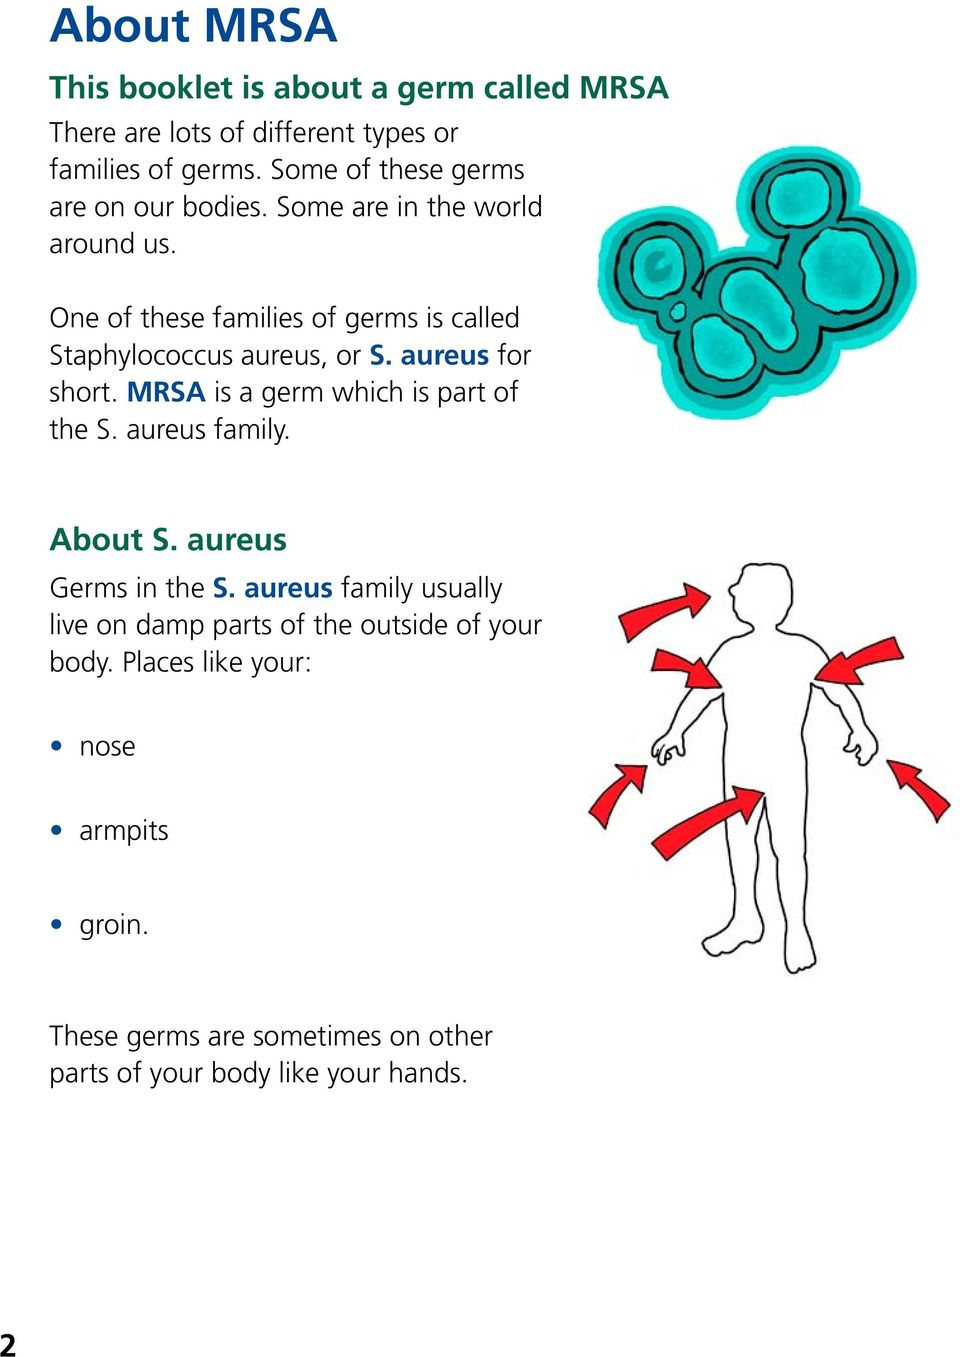 pics Must-Know MRSA Facts